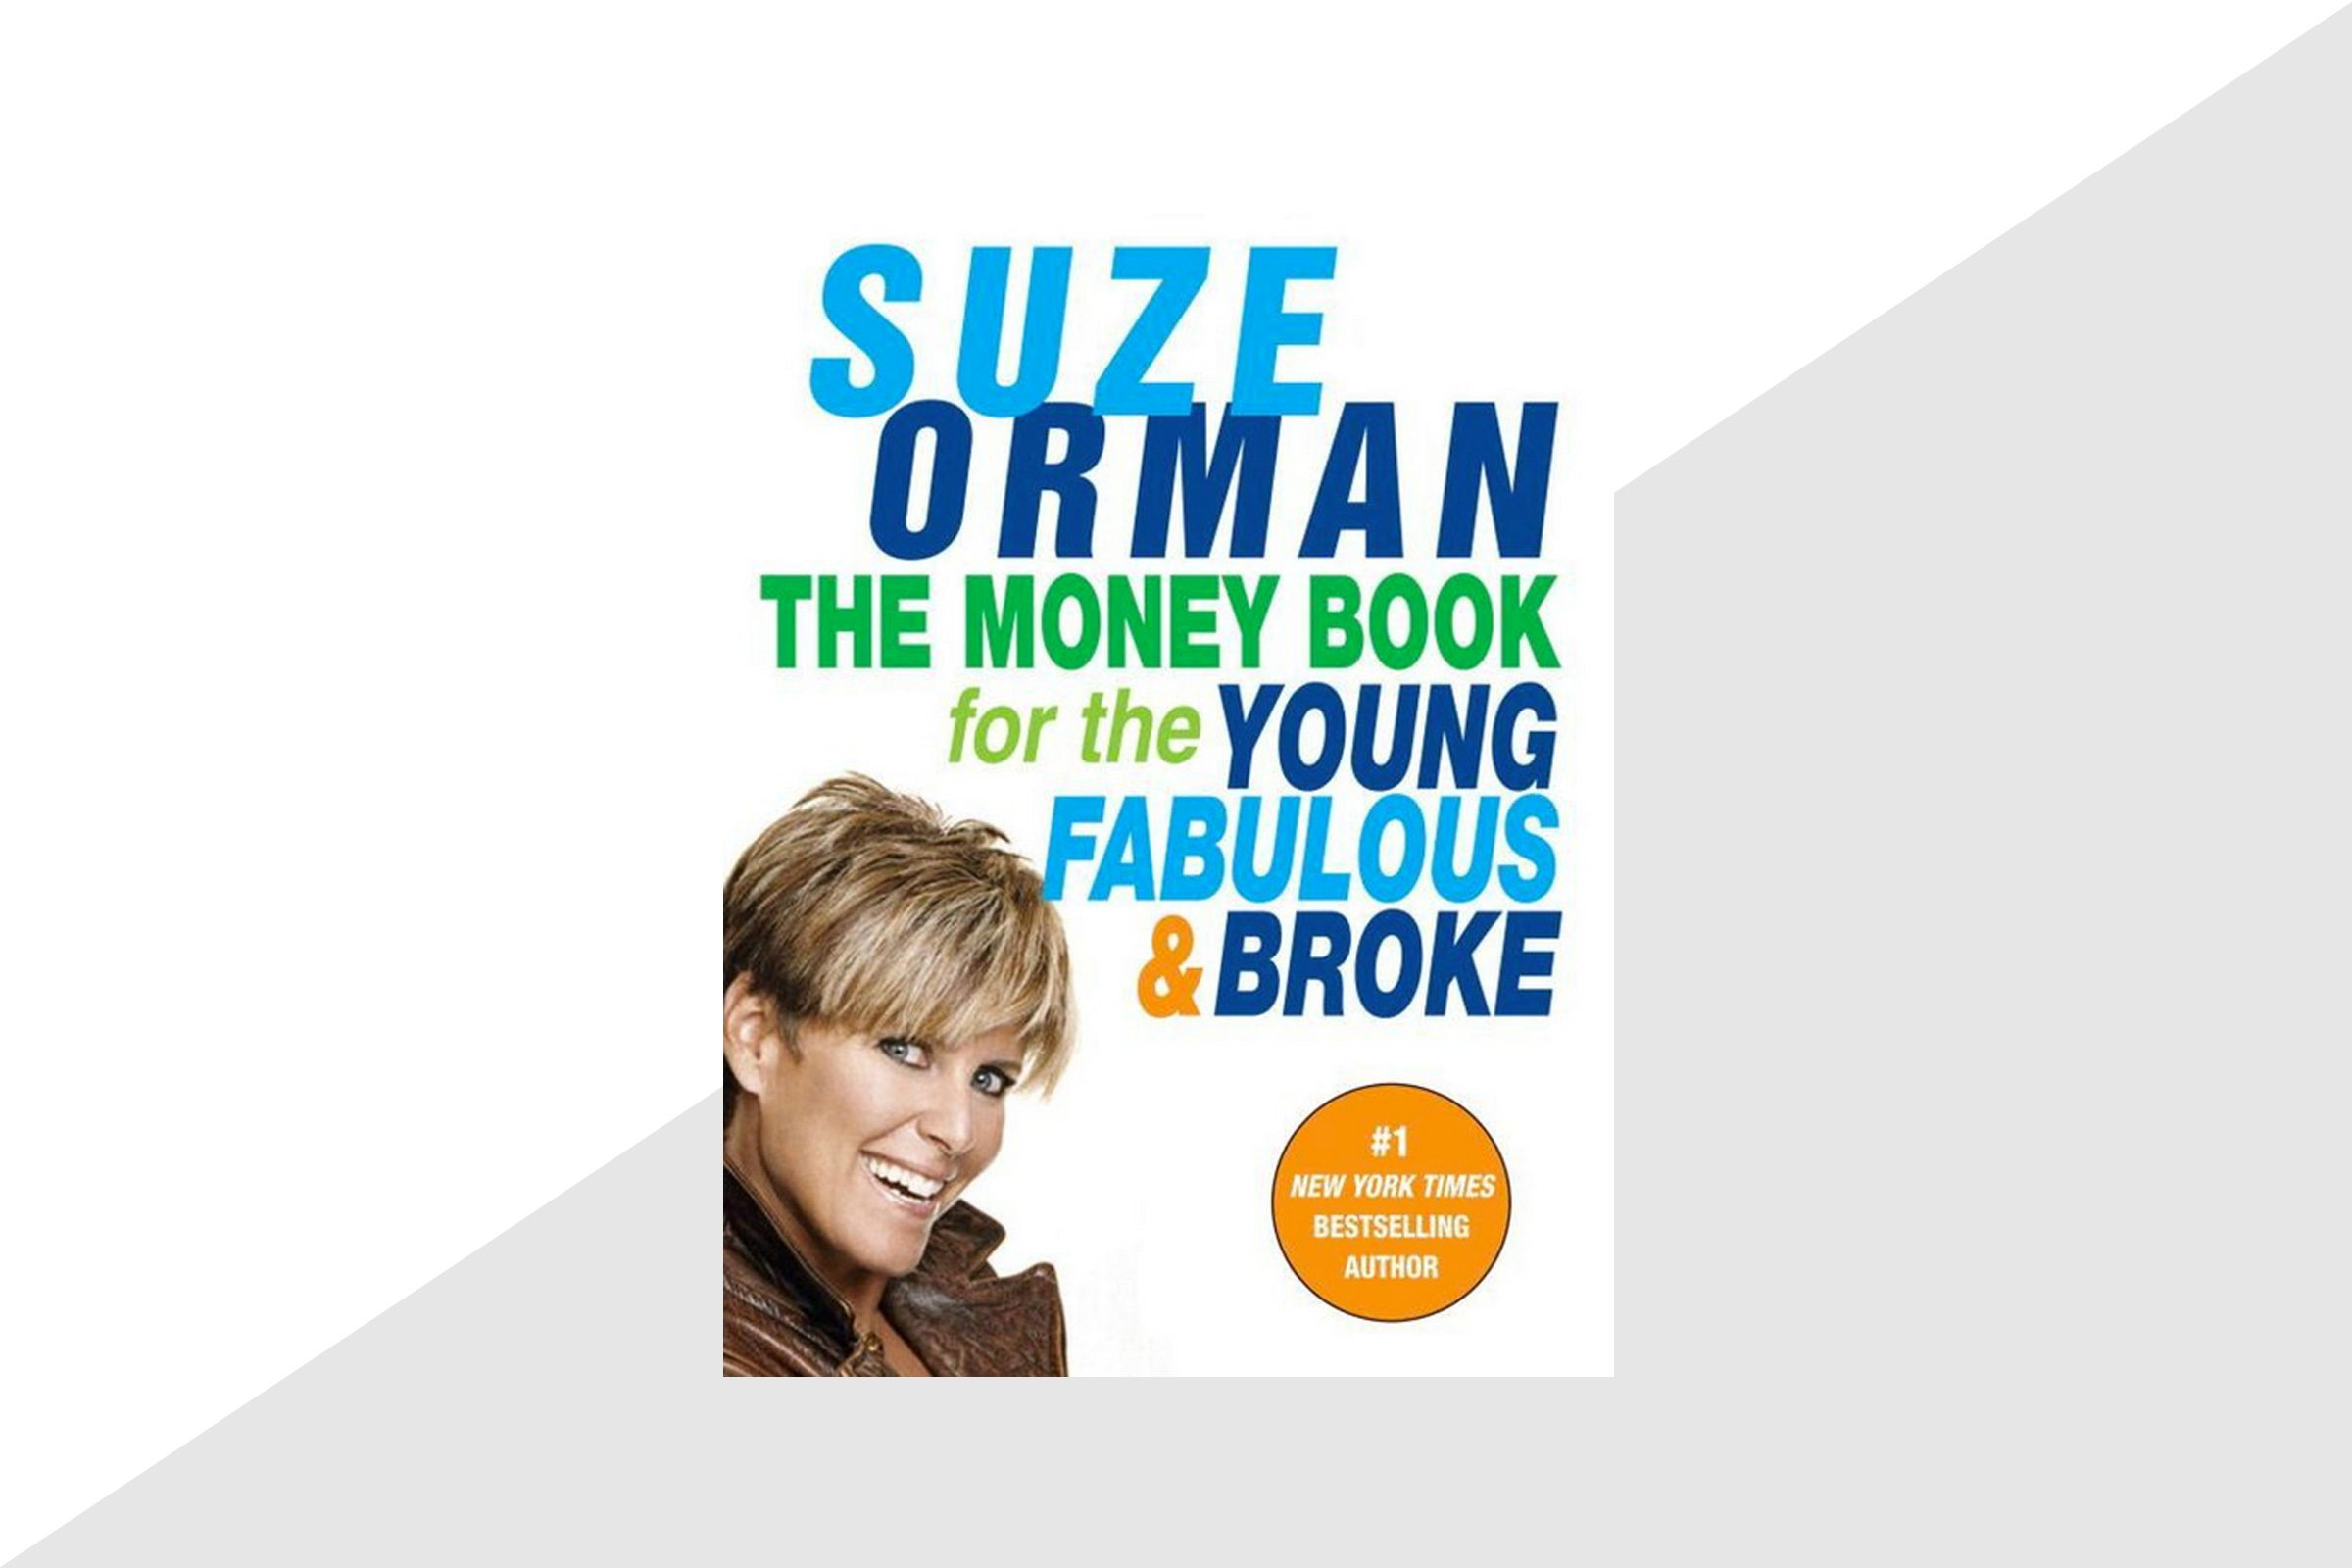 'The Money Book for the Young, Fabulous, and Broke' by Suze Orman